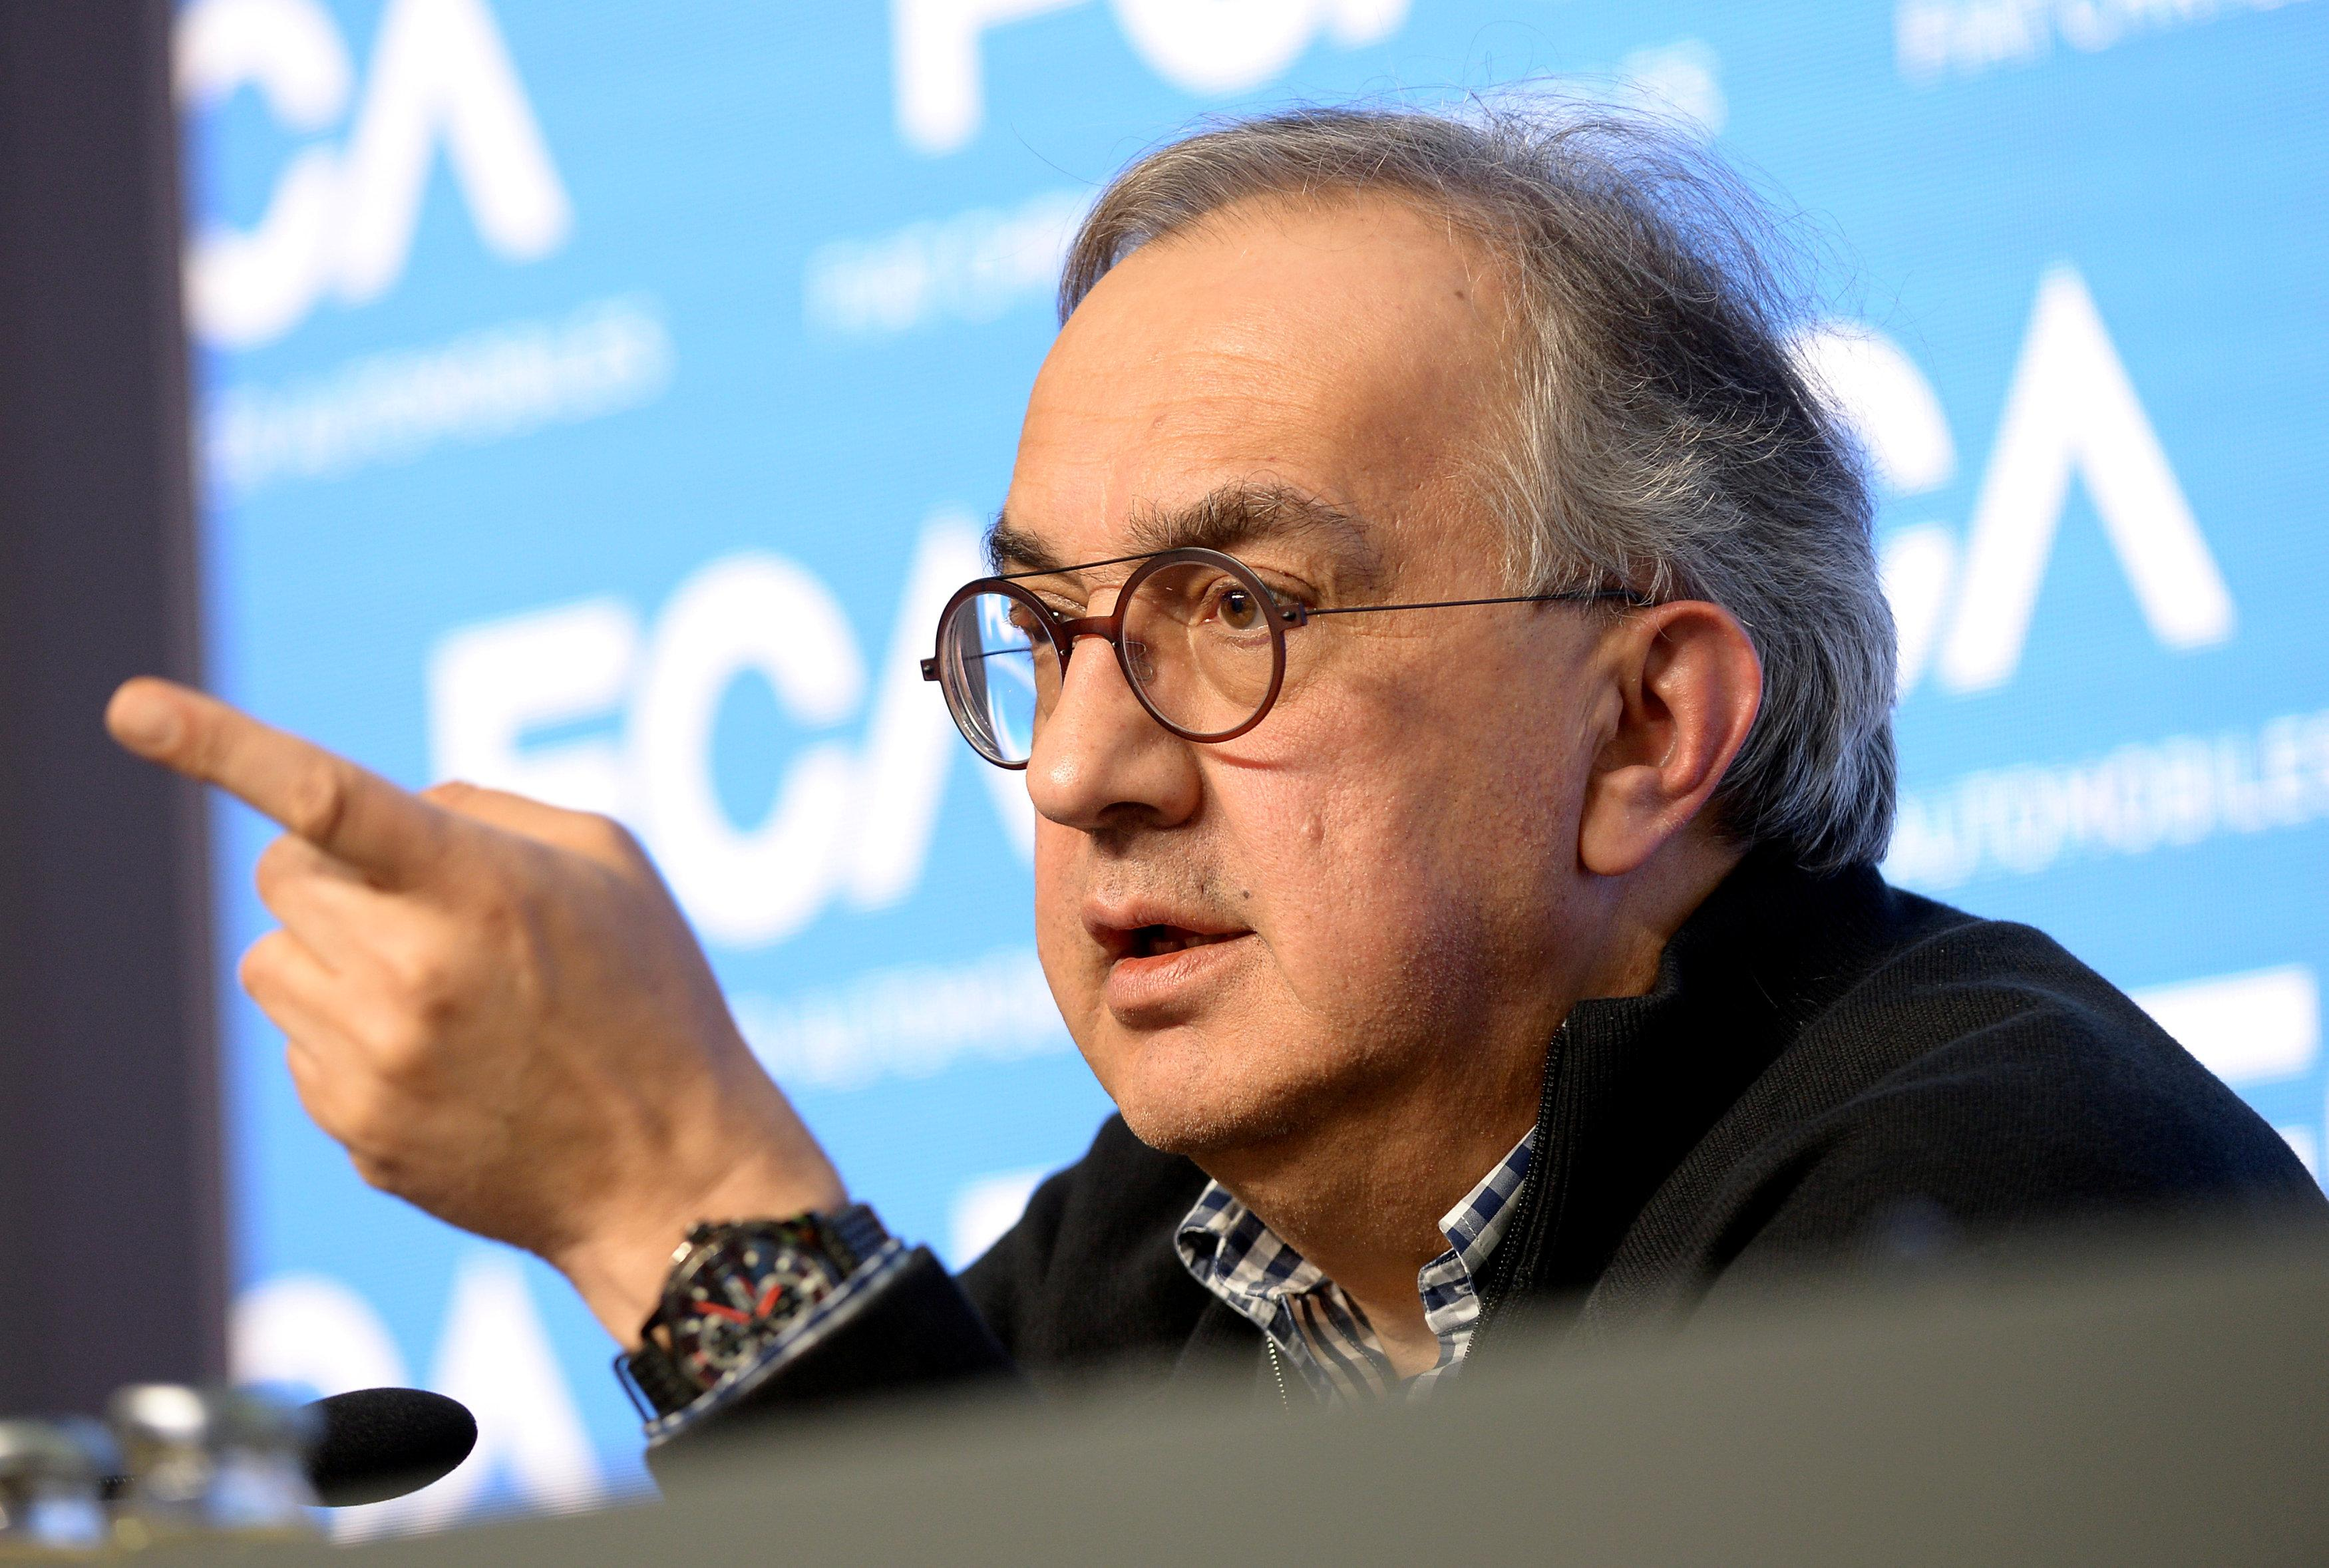 Fiat Chrysler Automobiles CEO Sergio Marchionne speaks during a media conference in Balocco, northern Italy, June 1, 2018.  Massimo Pinca